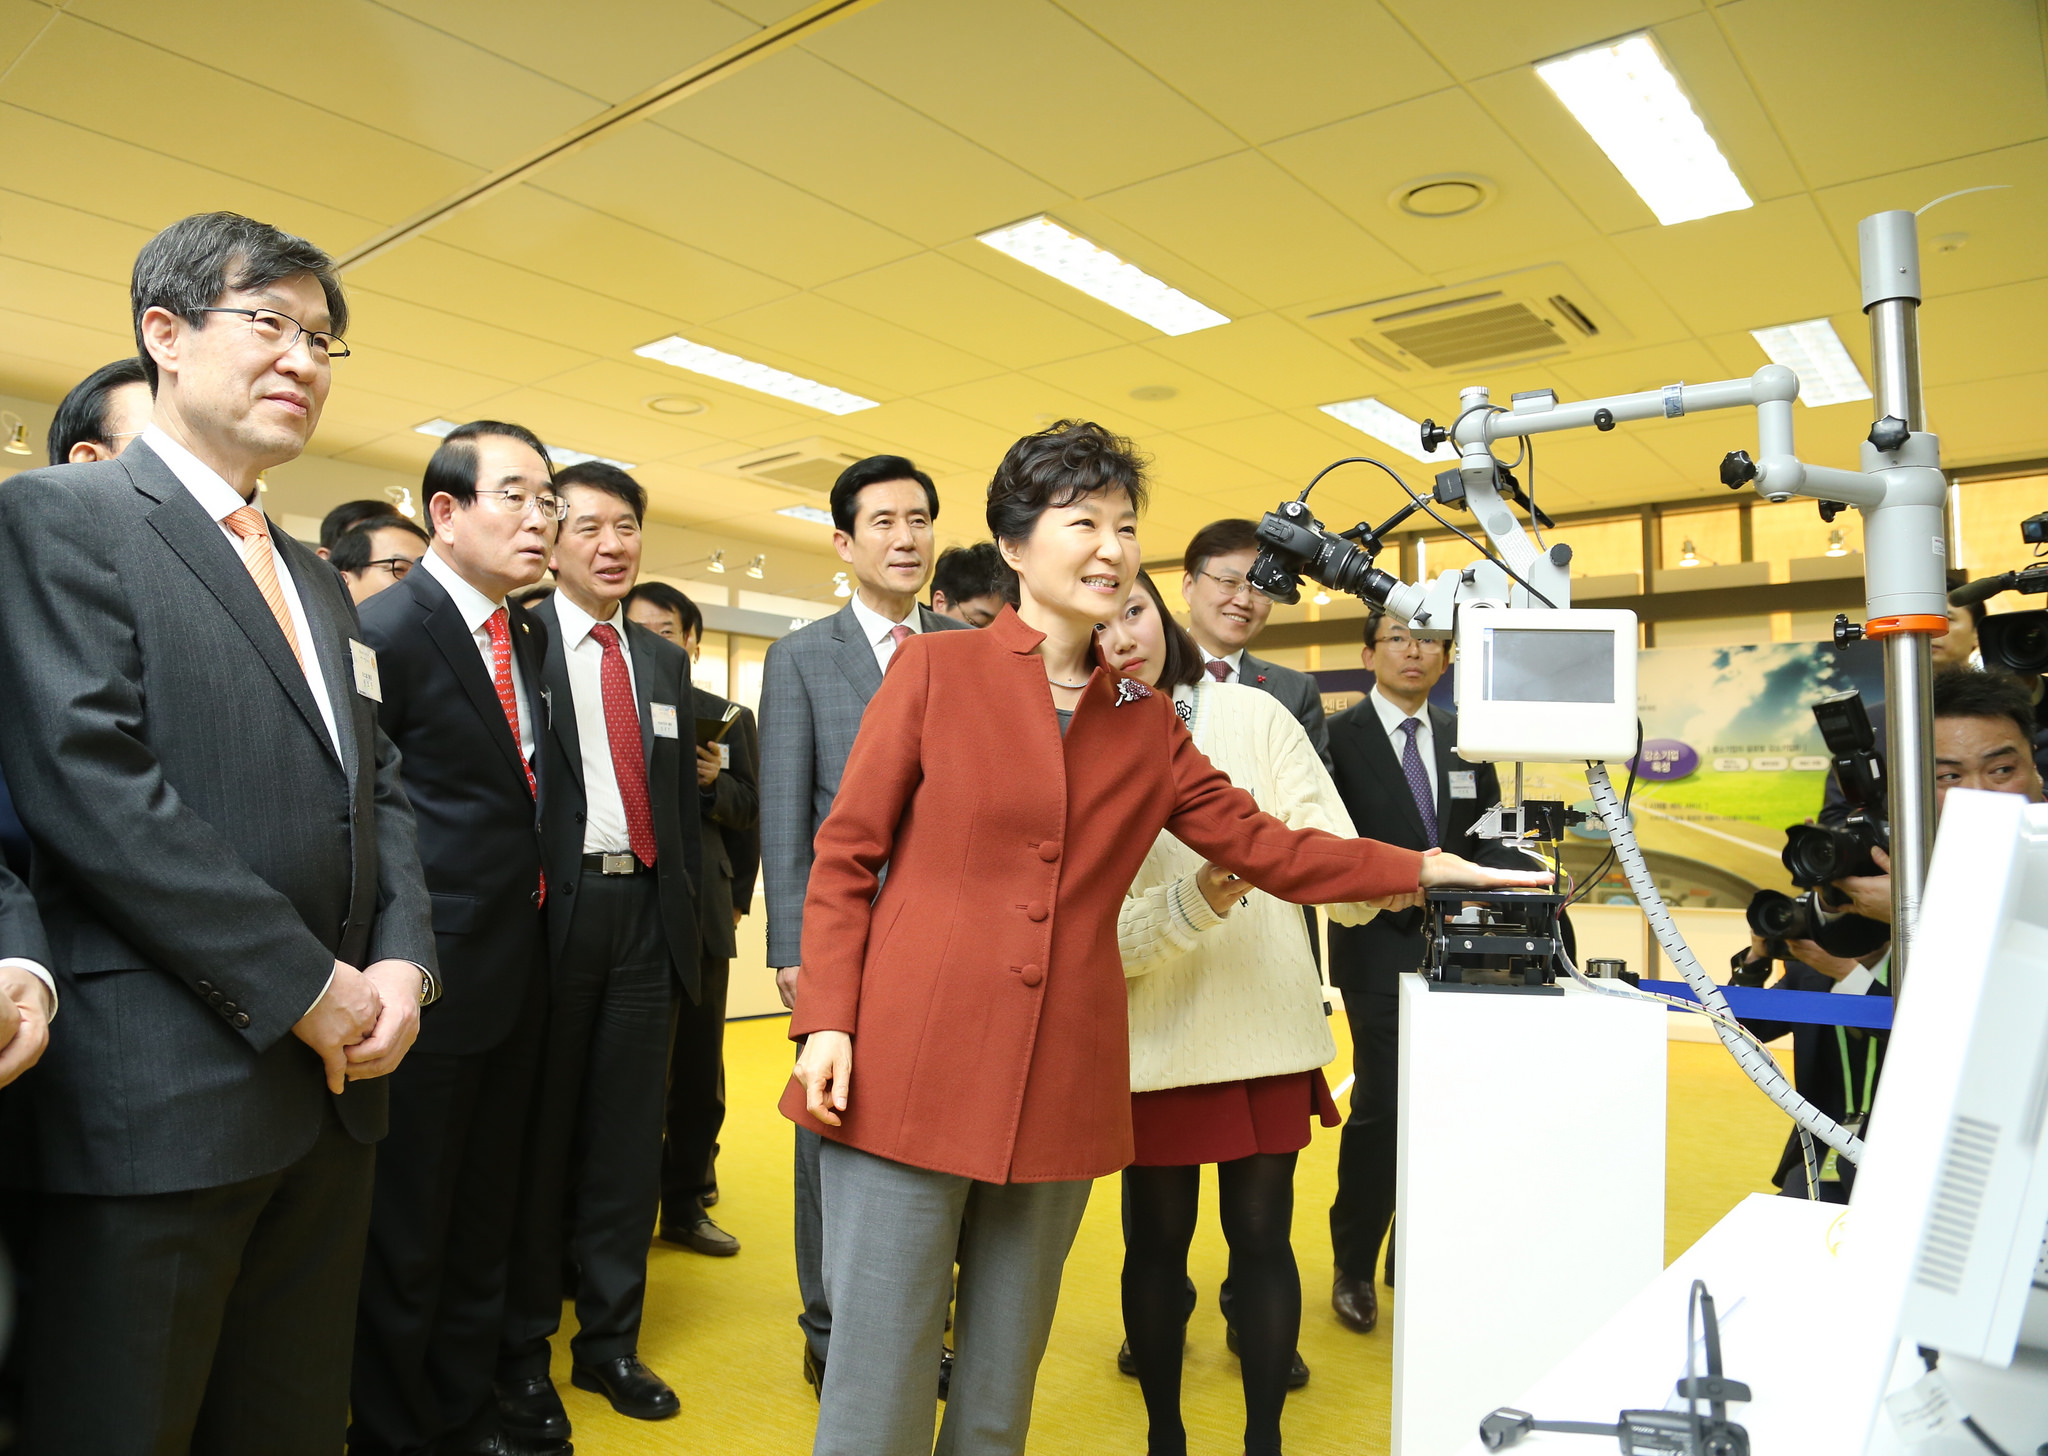 The Pohang Center for Creative Economy & Innovation Opens at POSTECH